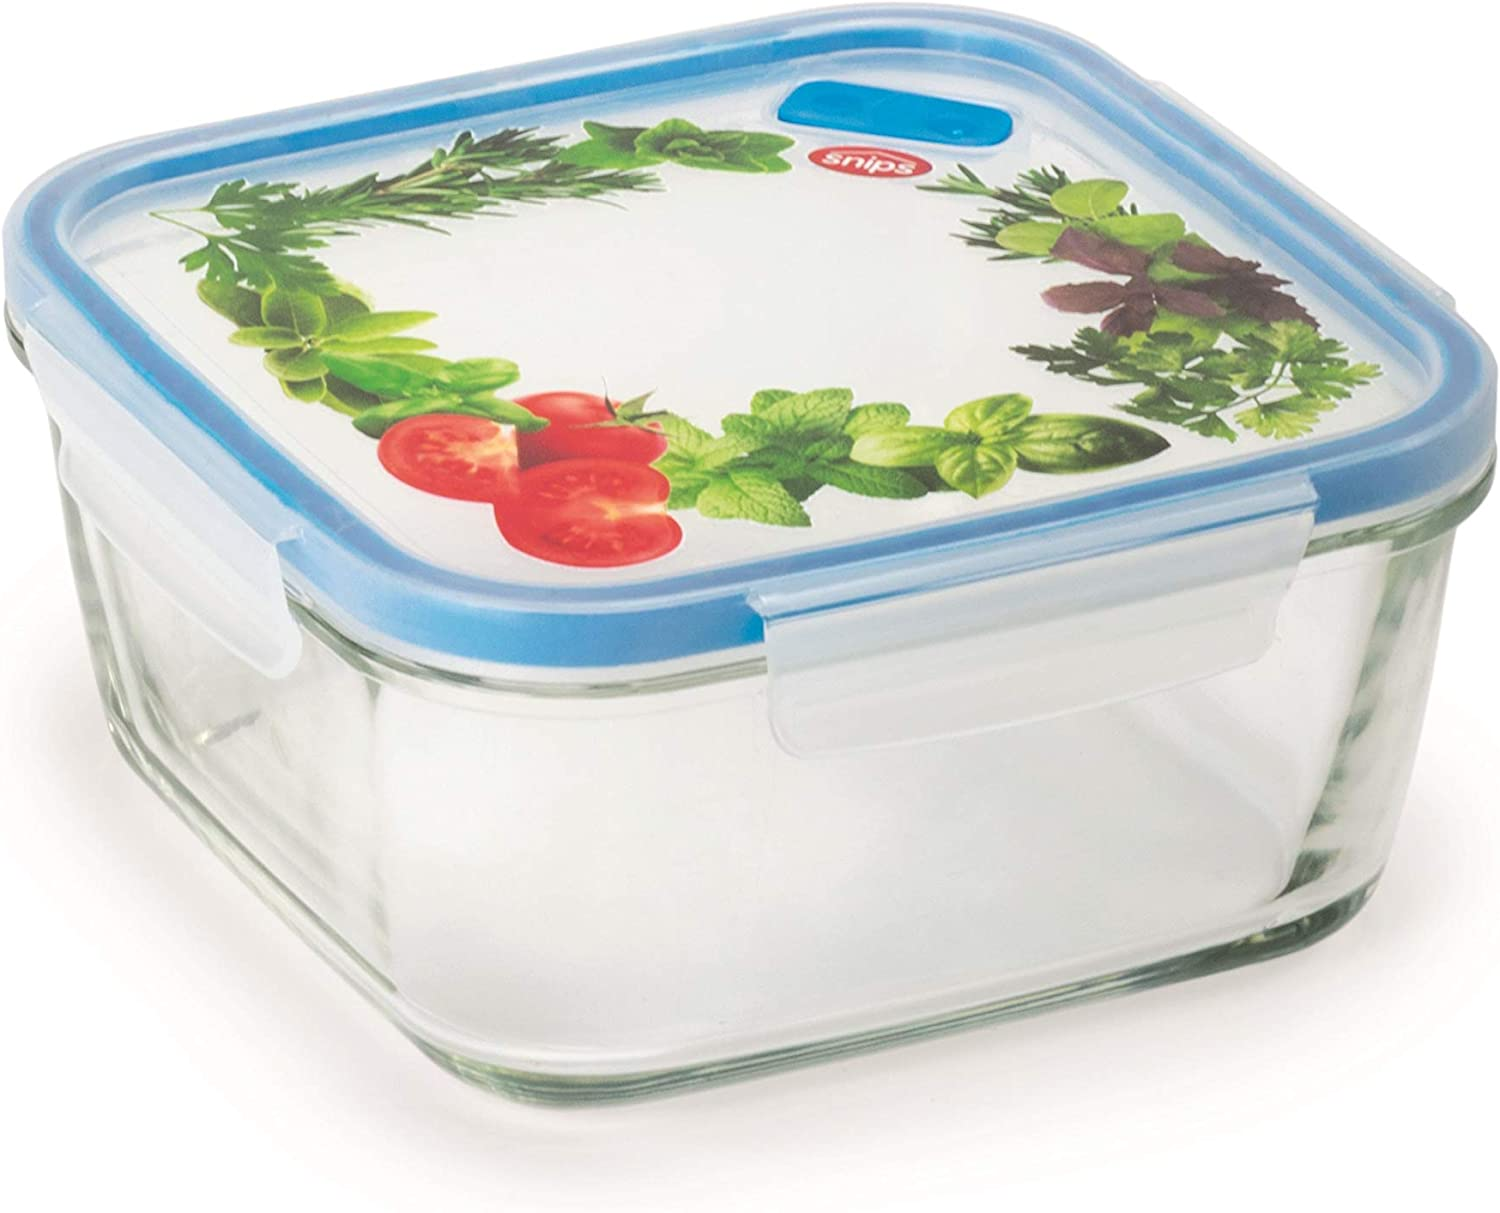 Snips Lock Glass Square Food Container 1.40L Transparent with De